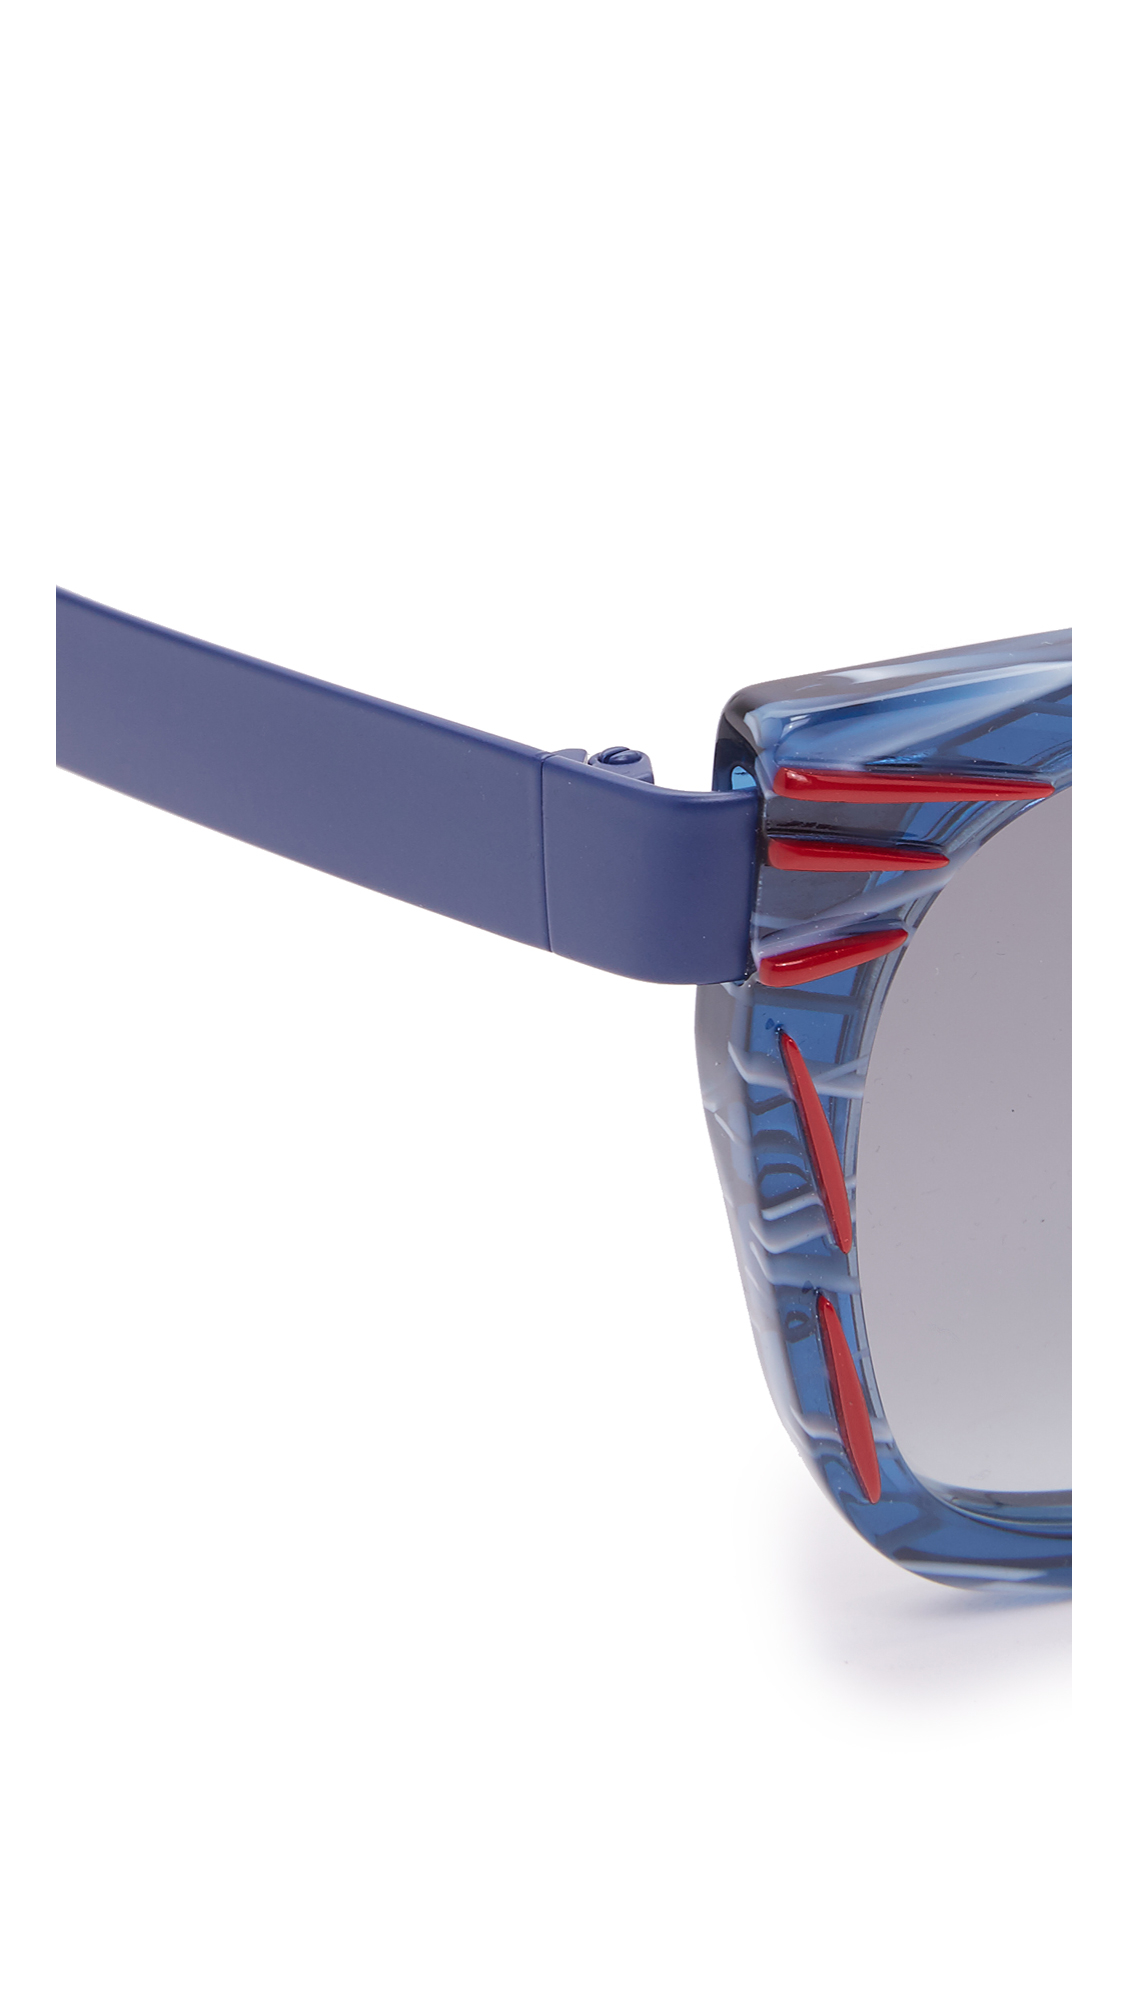 Fendi Thierry Lasry X Kinky Sunglasses in Red Dark Blue/Grey (Grey)